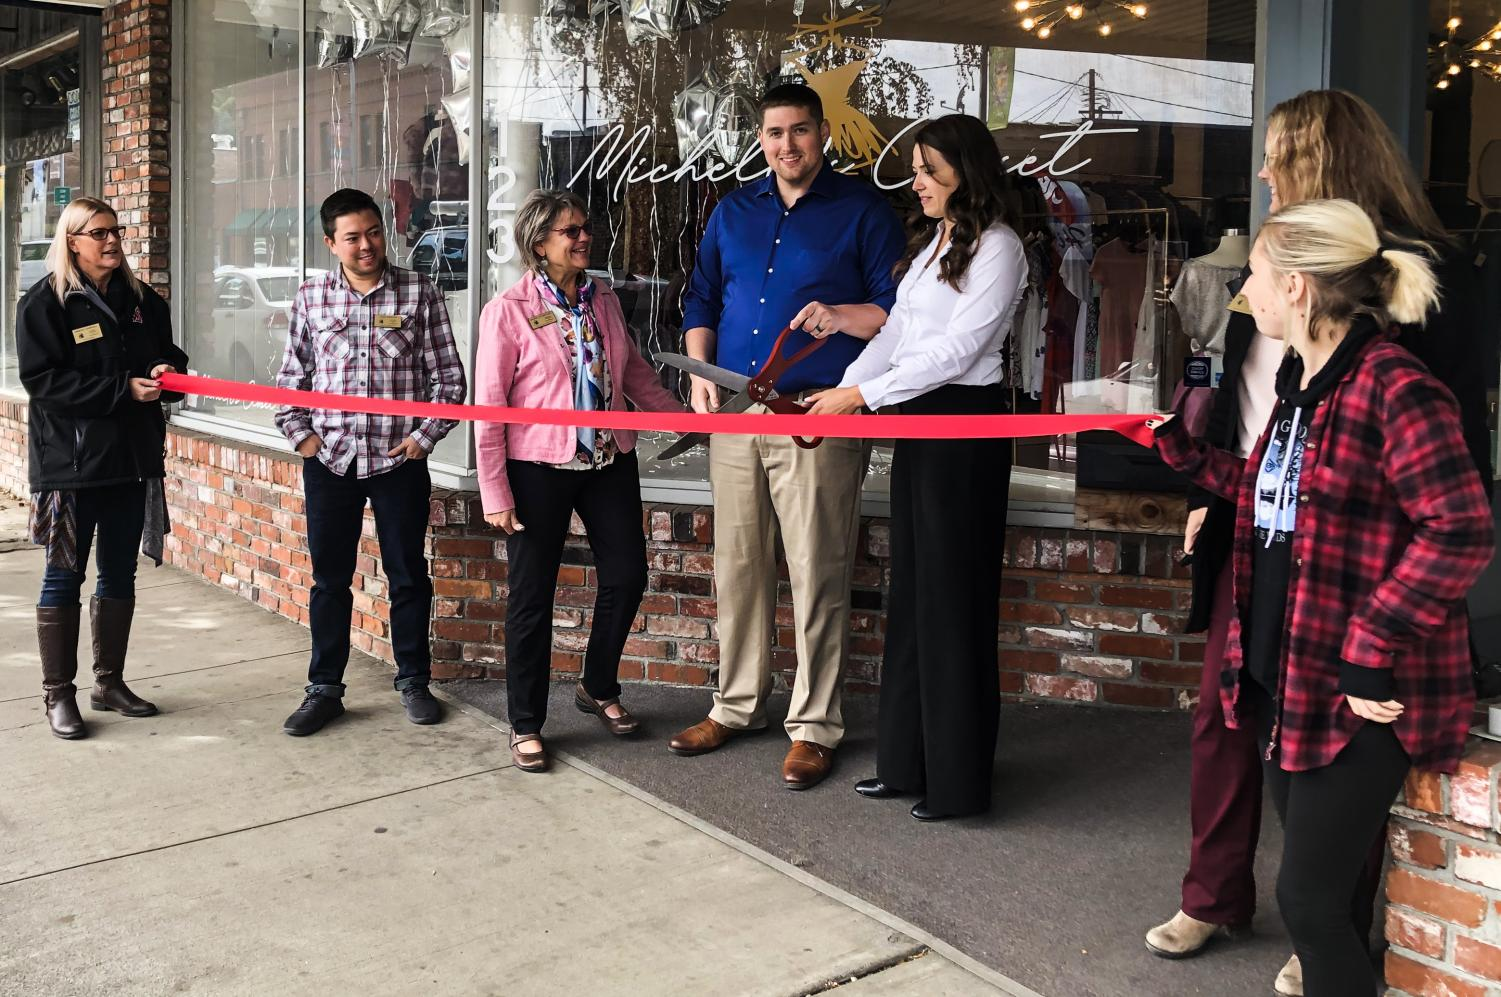 Michelle's Closet owners Michael and Michelle Kelly cut the ribbon outside of their store at their grand opening at noon Tuesday in downtown Pullman. The store will operate as a consignment shop for men's and women's clothing.